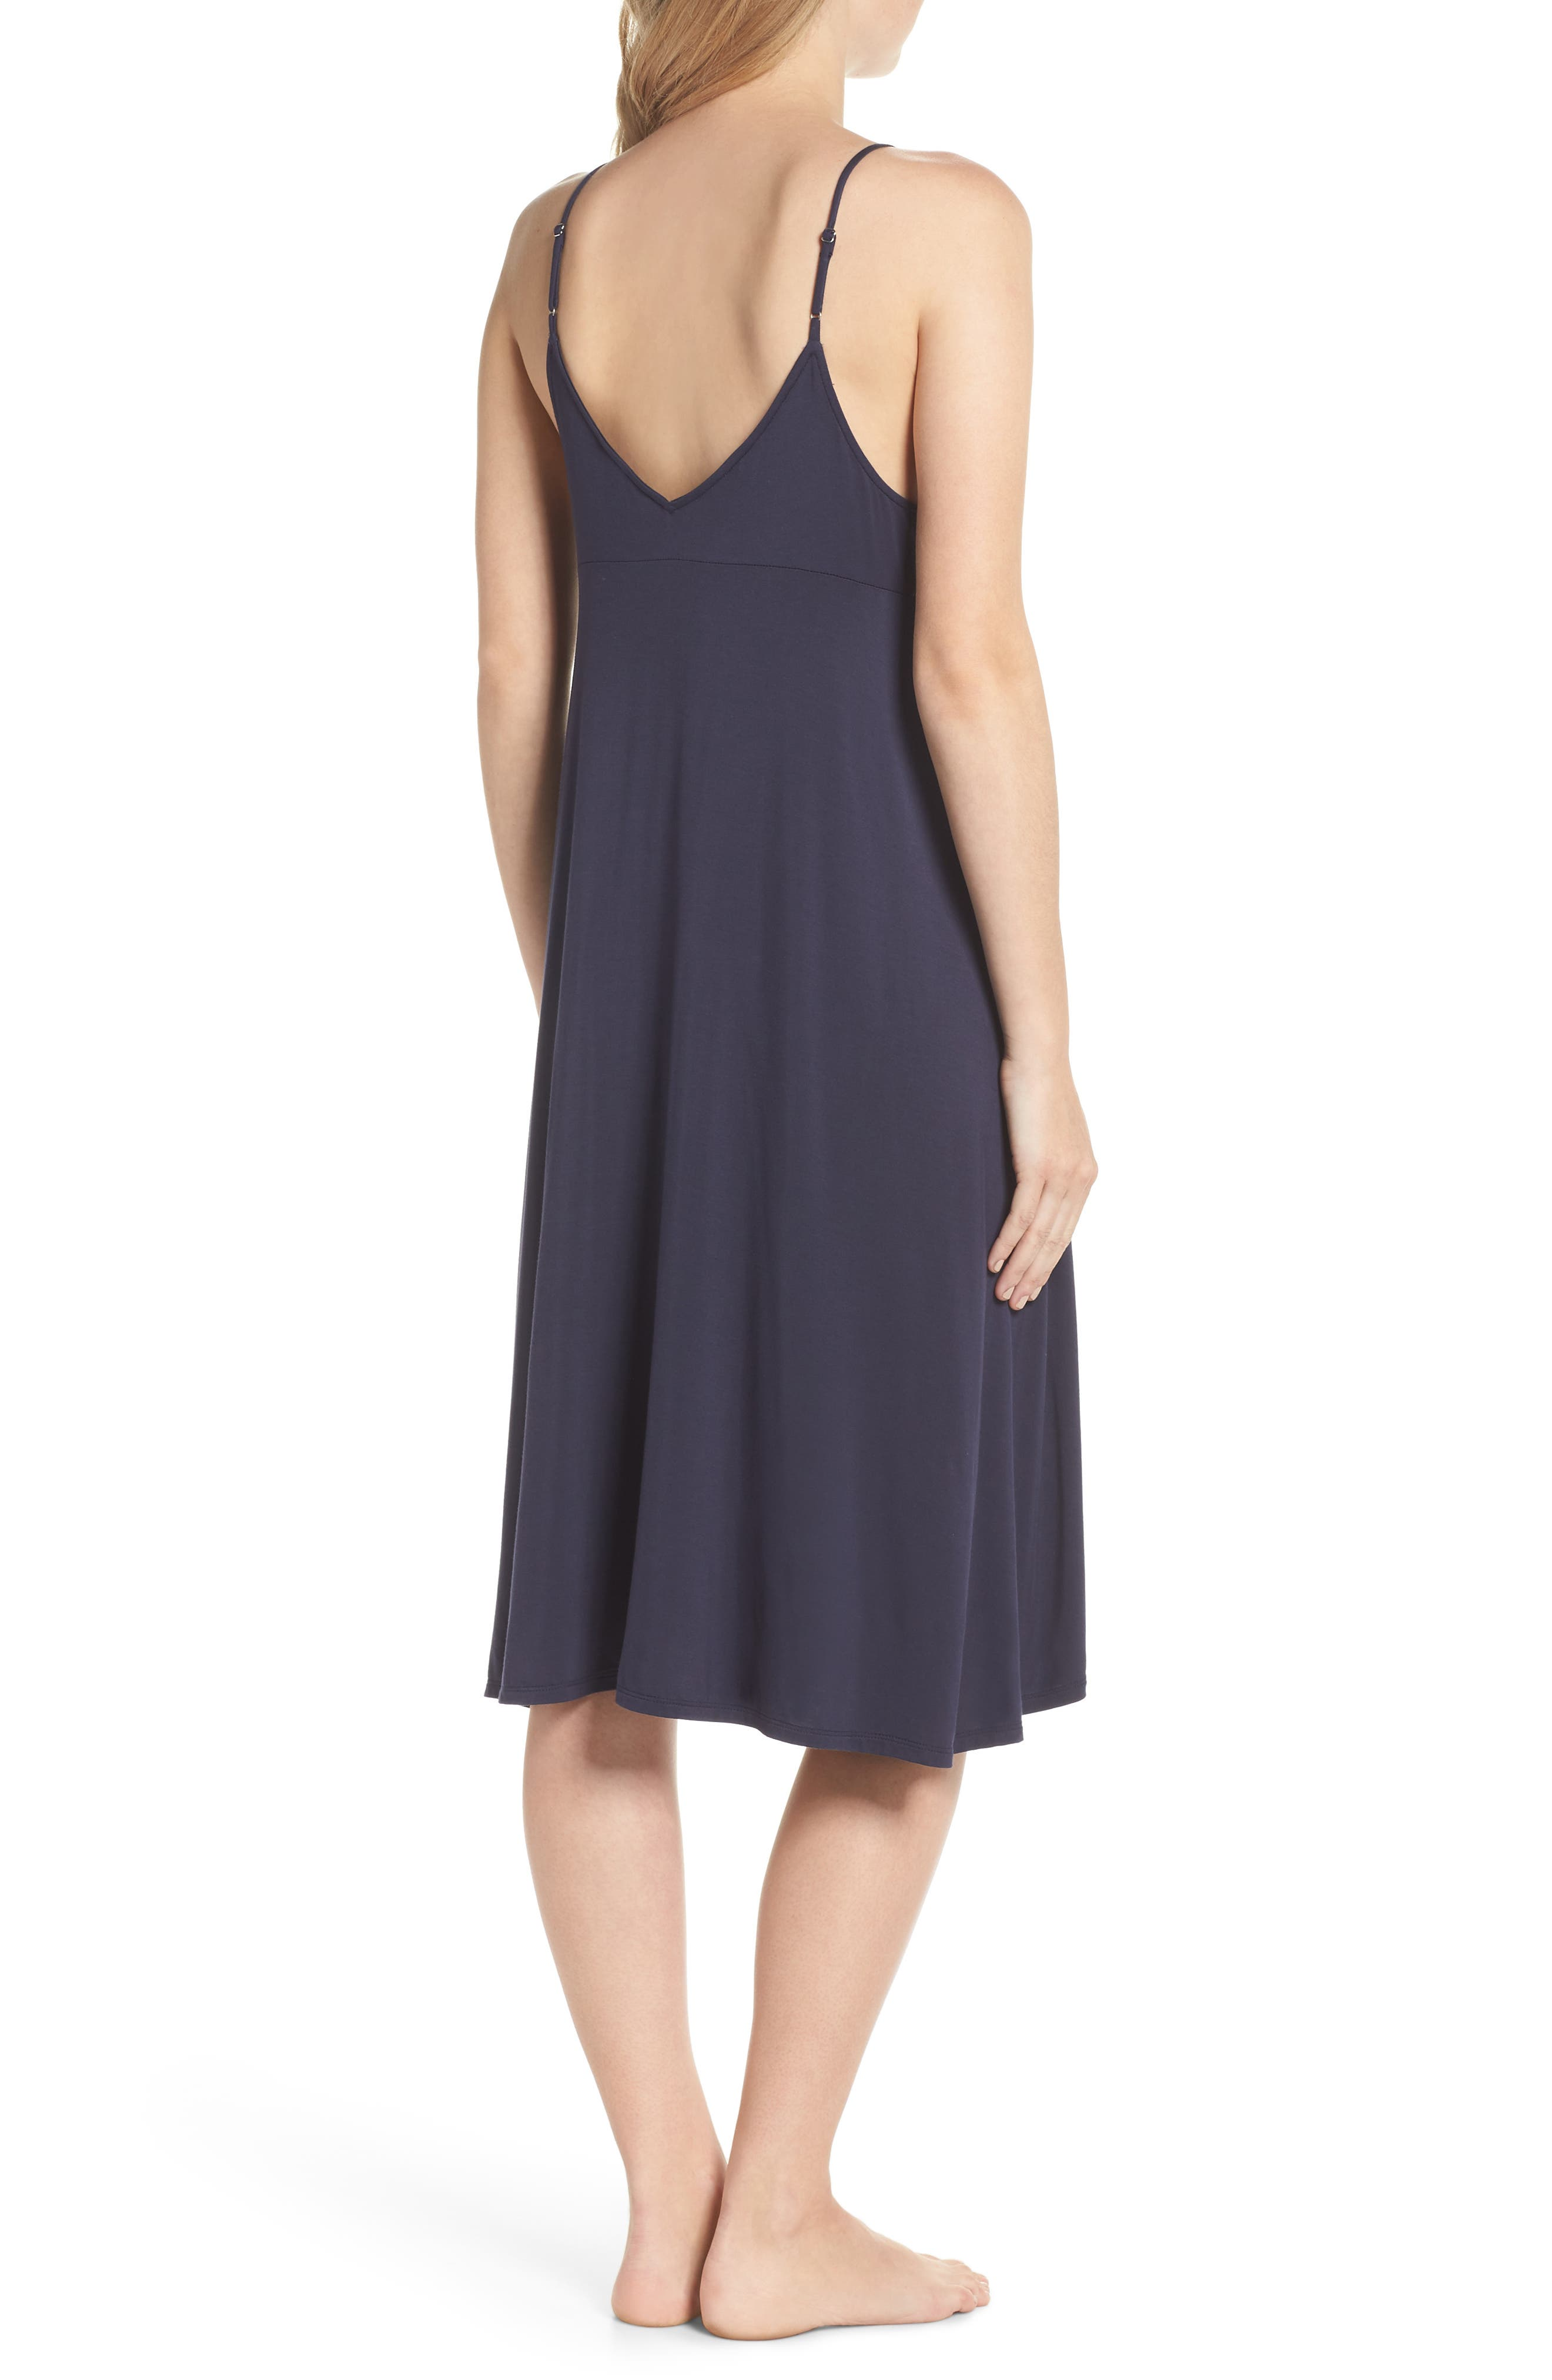 Feathers Essential Nightgown,                             Alternate thumbnail 2, color,                             403